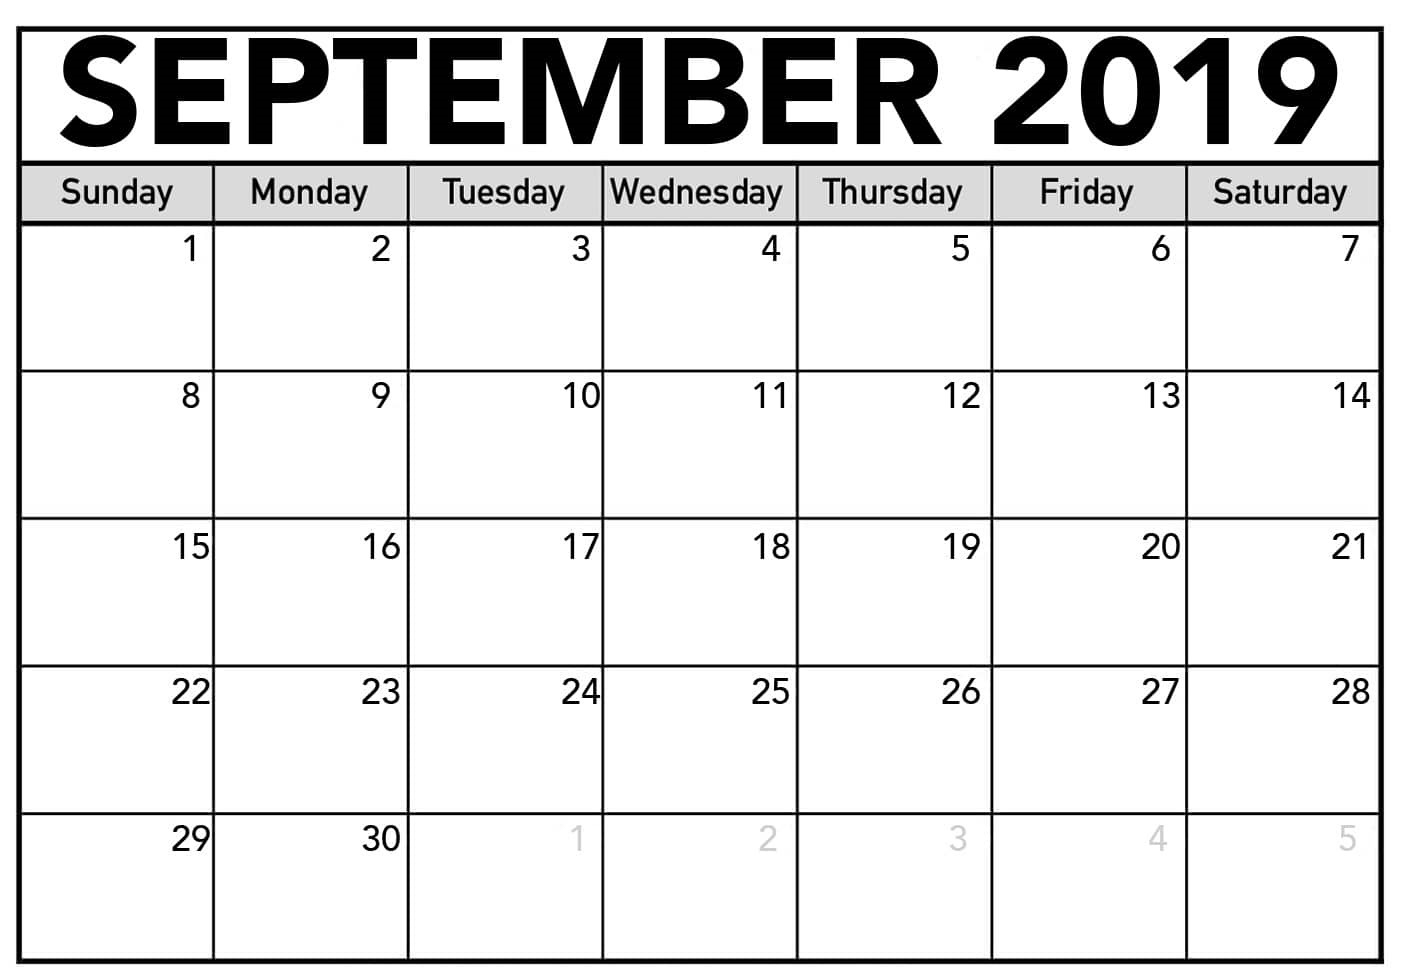 September 2019 Calendar Printable Large Print Sheet - Latest